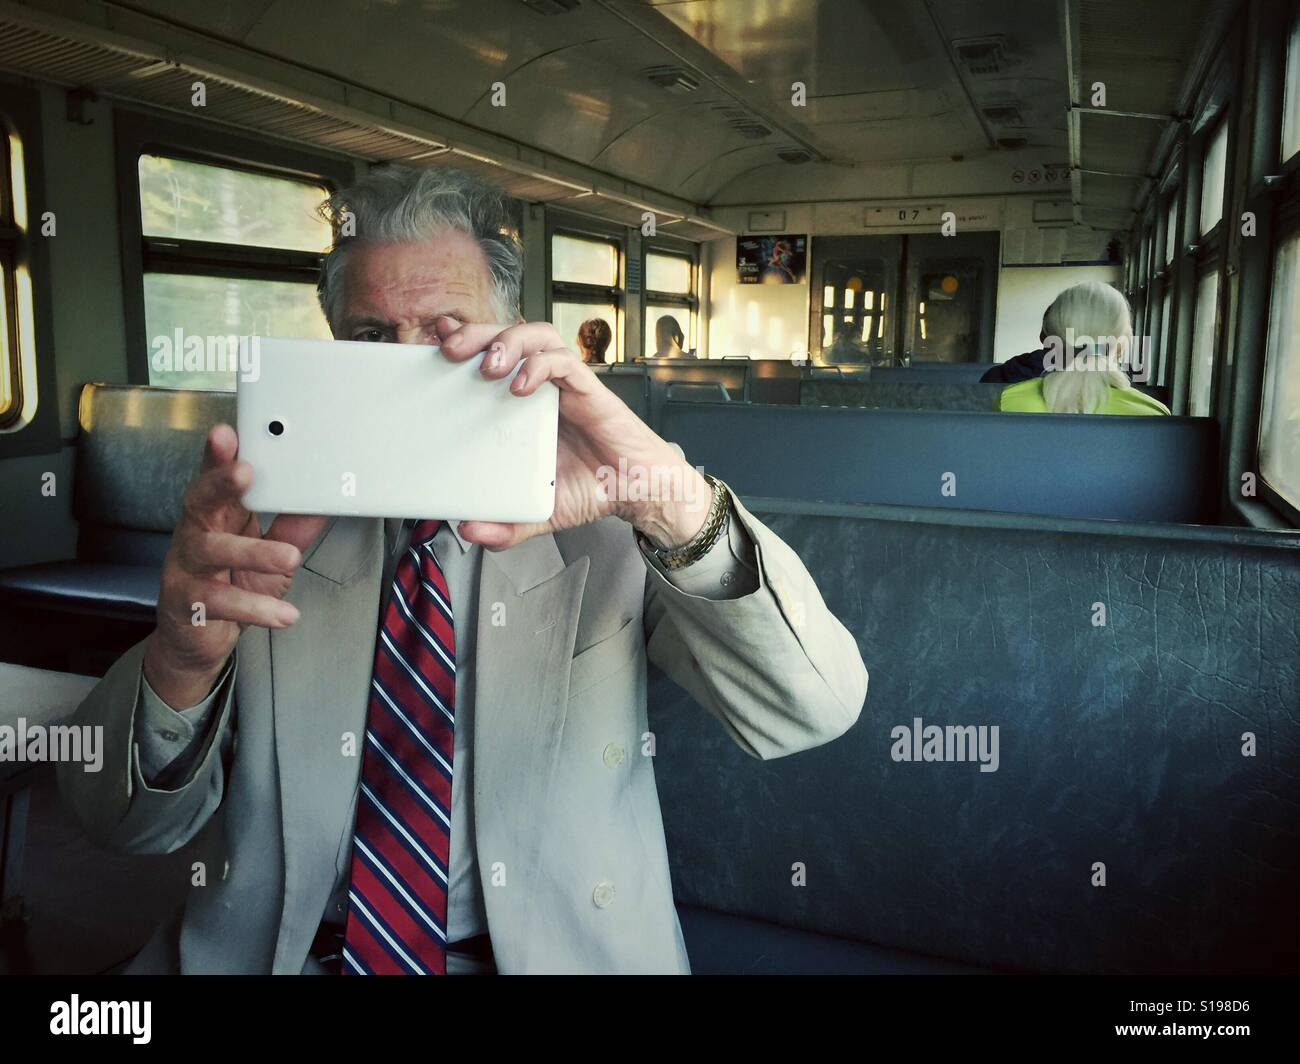 Man taking a photo with a tablet on a train in Russia - Stock Image